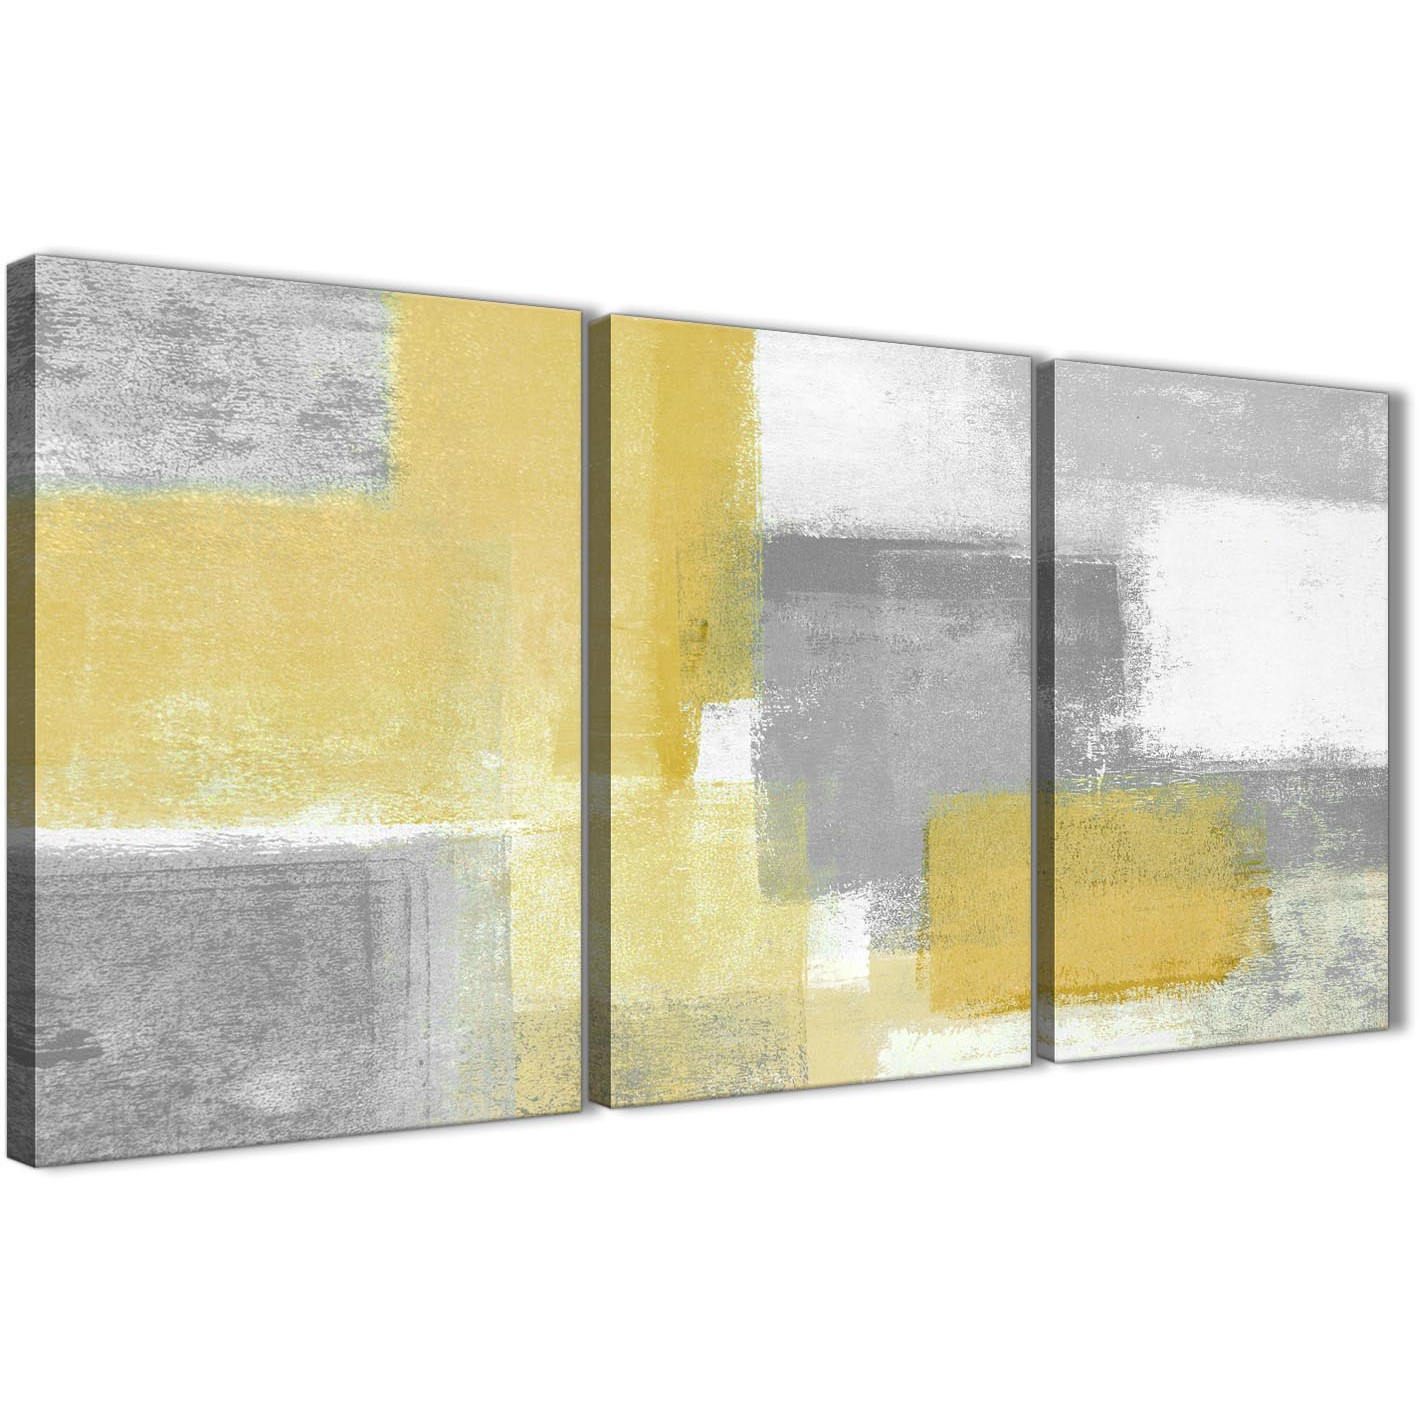 3 panel mustard yellow grey kitchen canvas wall art decor for 3 by 3 prints